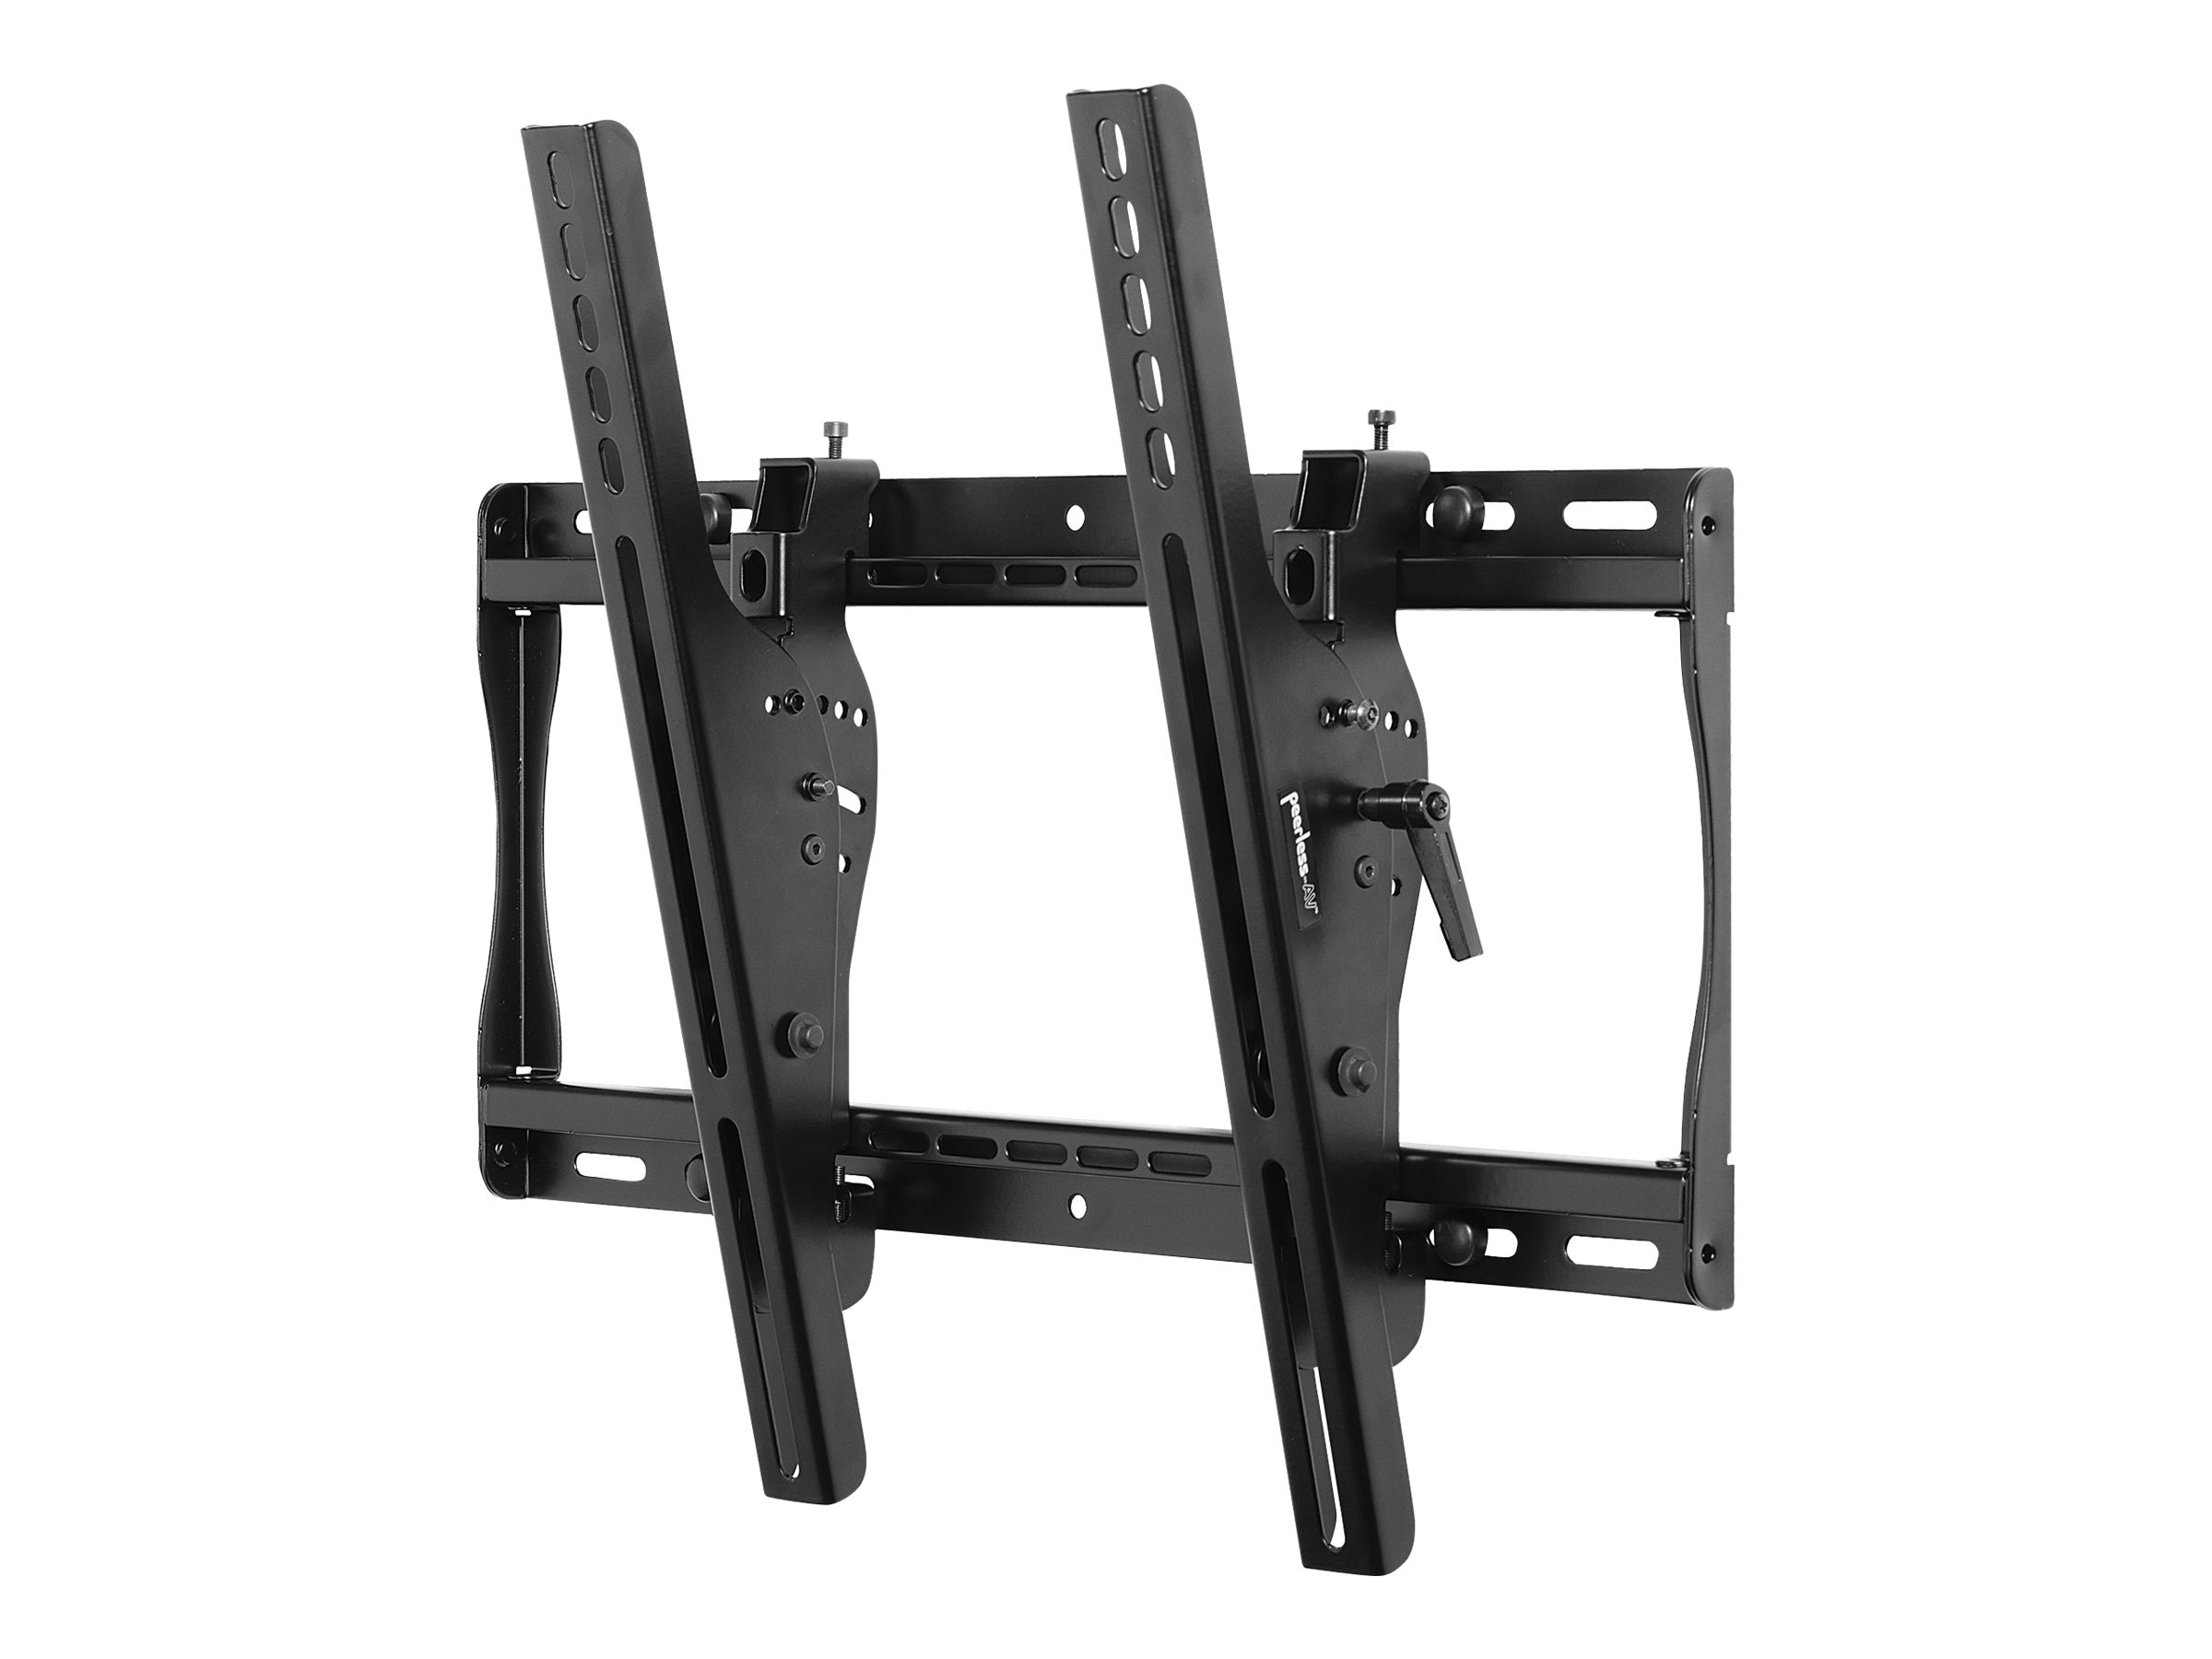 Open Box Peerless Smartmount Universal Adjustable Tilt Wall Mount for 22-46 Flat Panels, Standard Model, Black